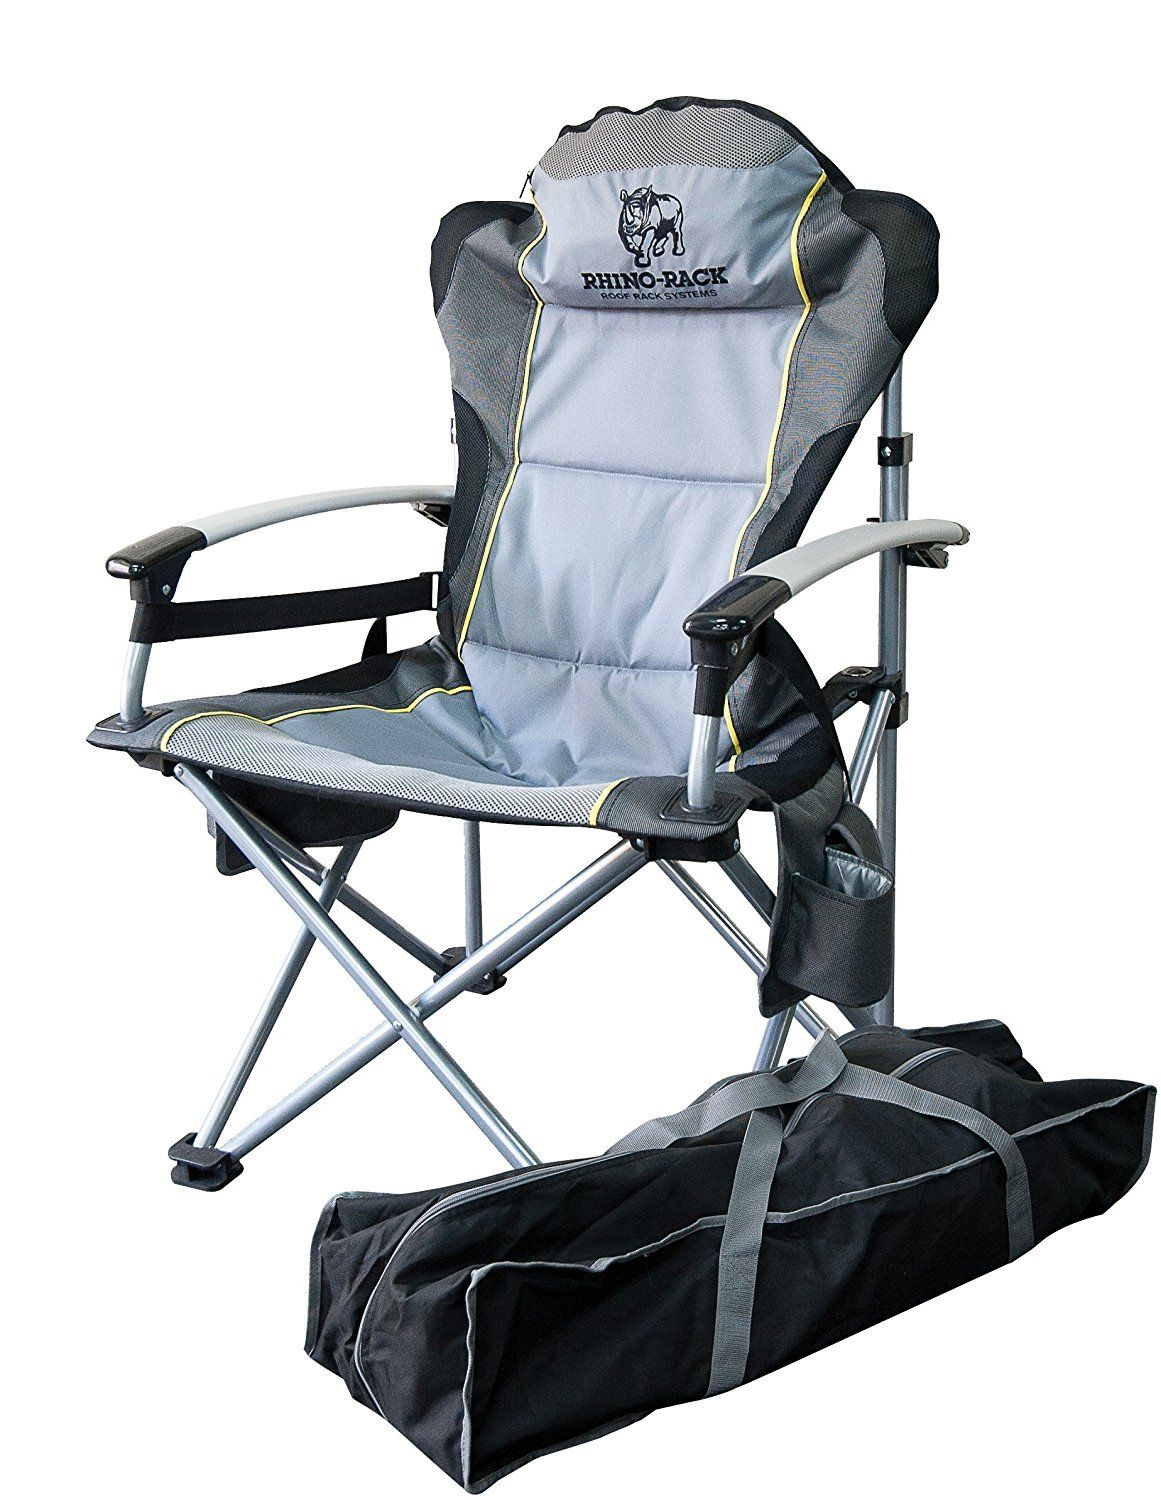 Rhino Rack Camping Chair This is an Amazon Affiliate